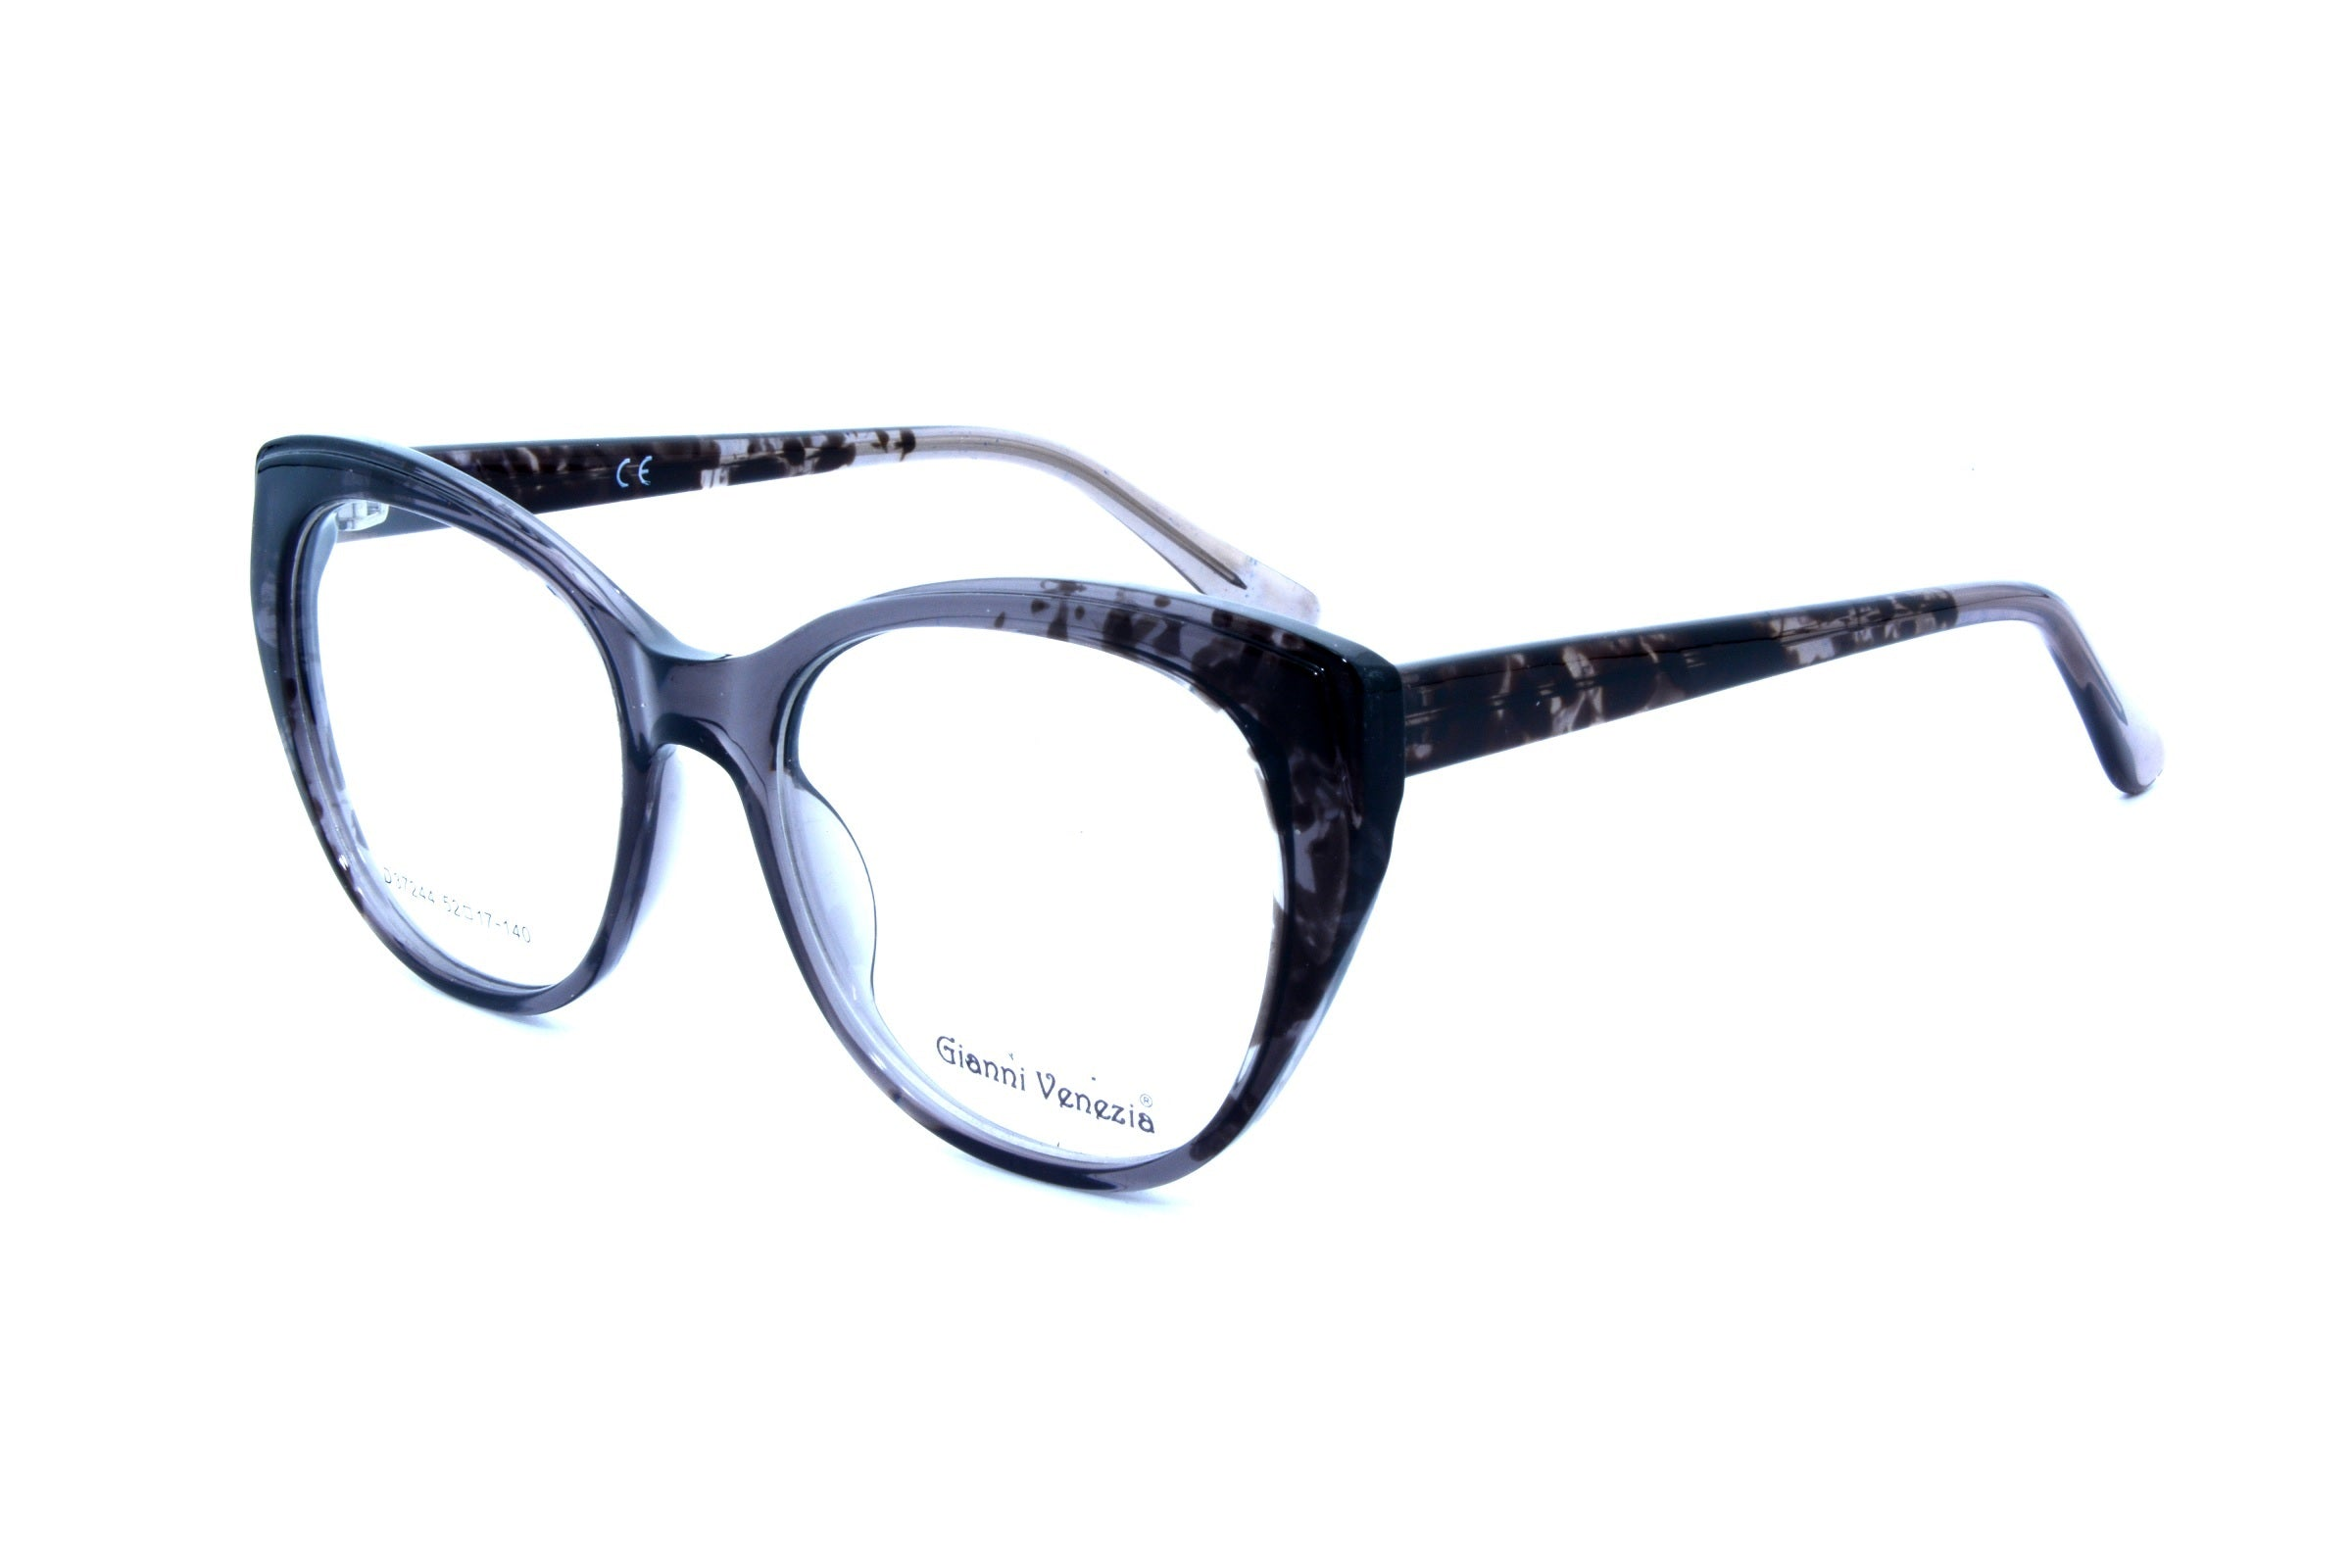 Gianni Vennezia eyewear 37244, C1 - Optics Trading